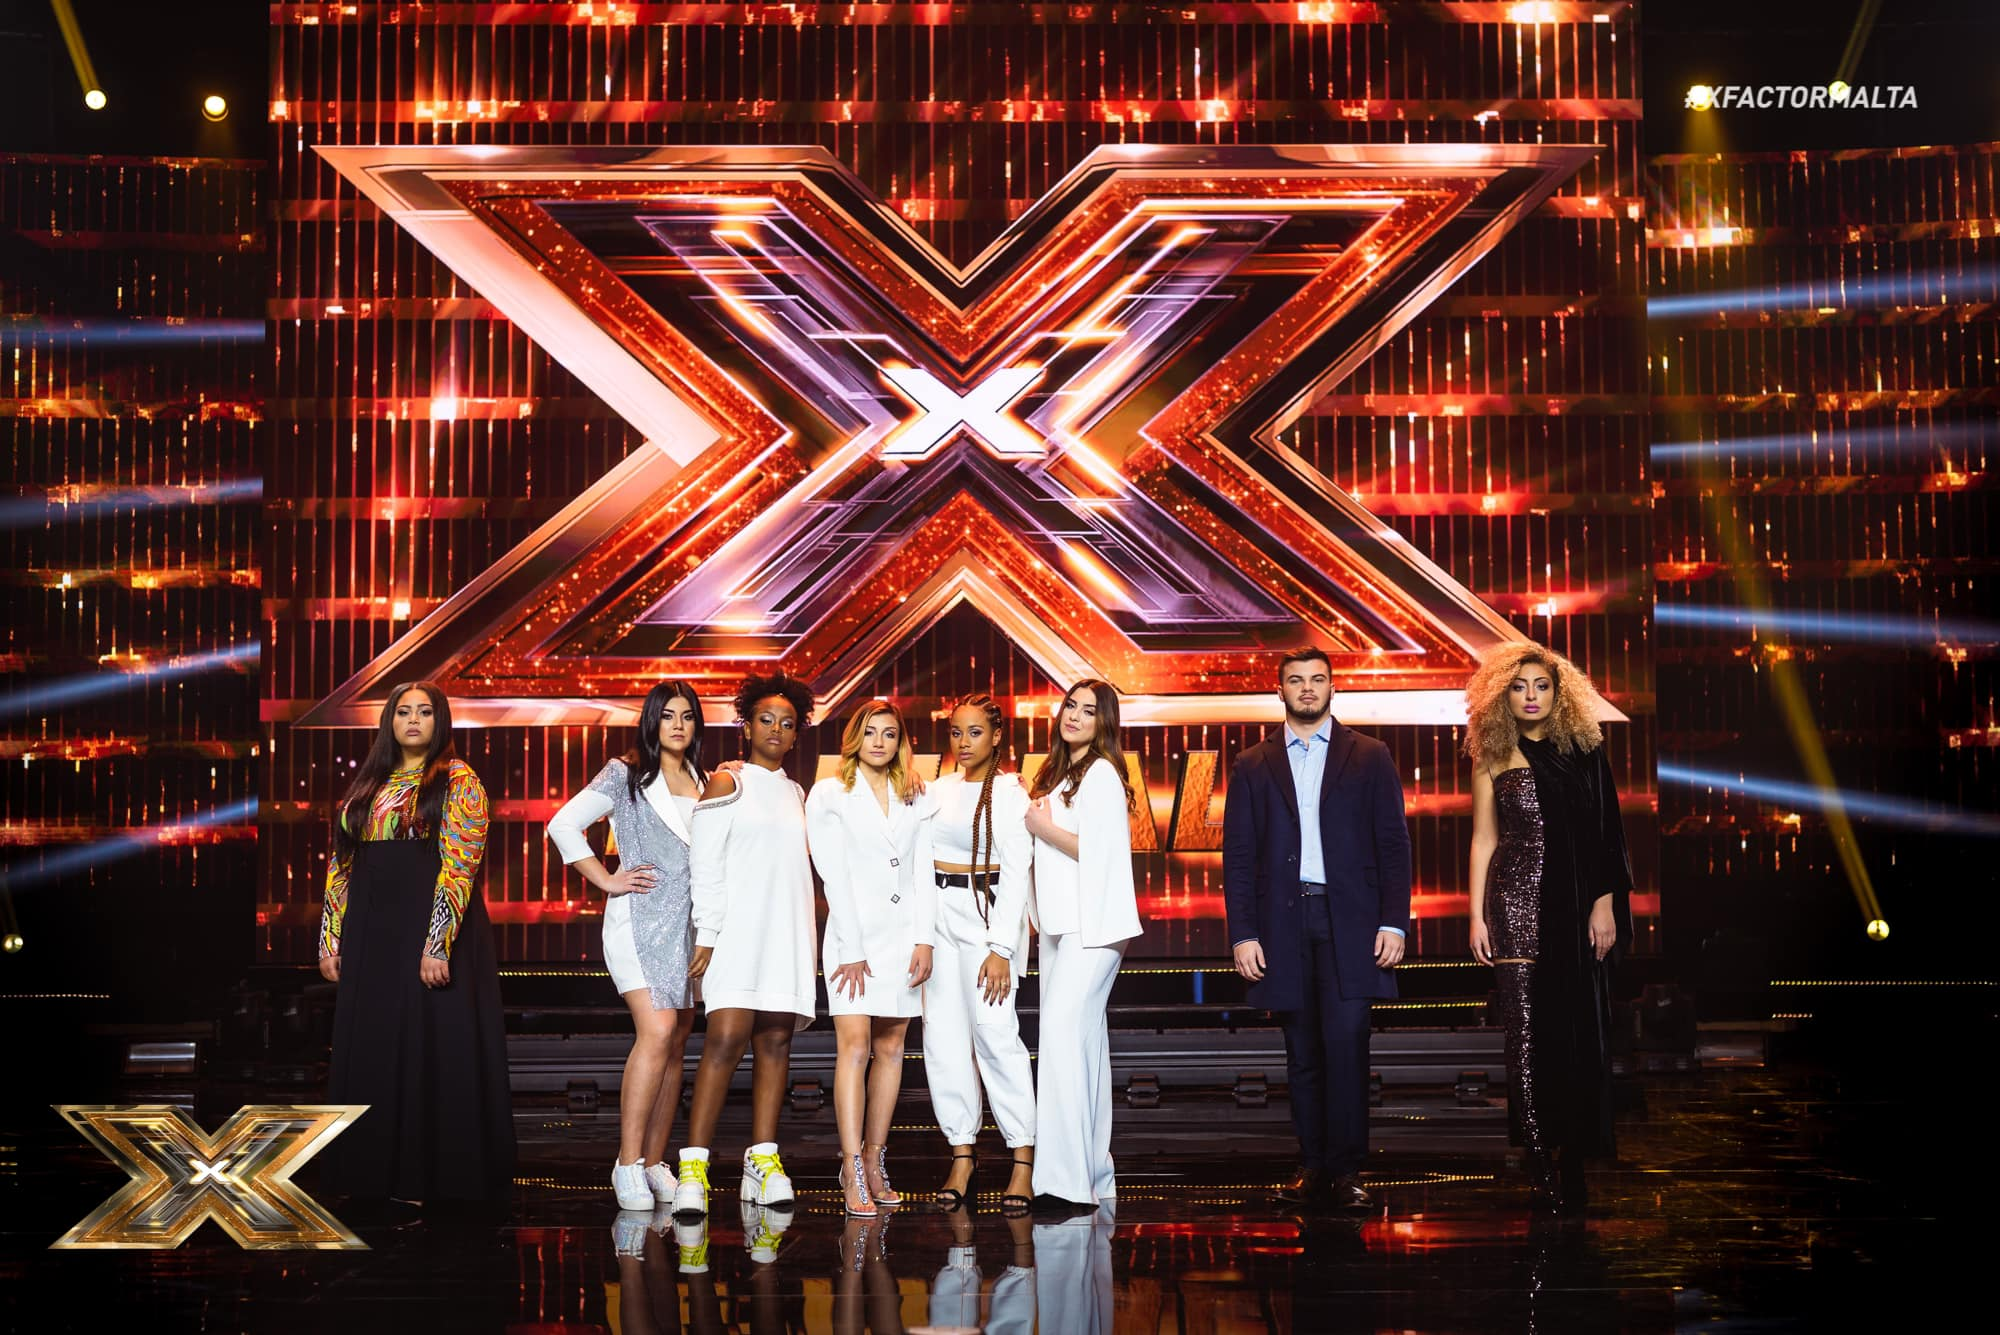 Malta: Tonight the final show of X-factor Malta 2020